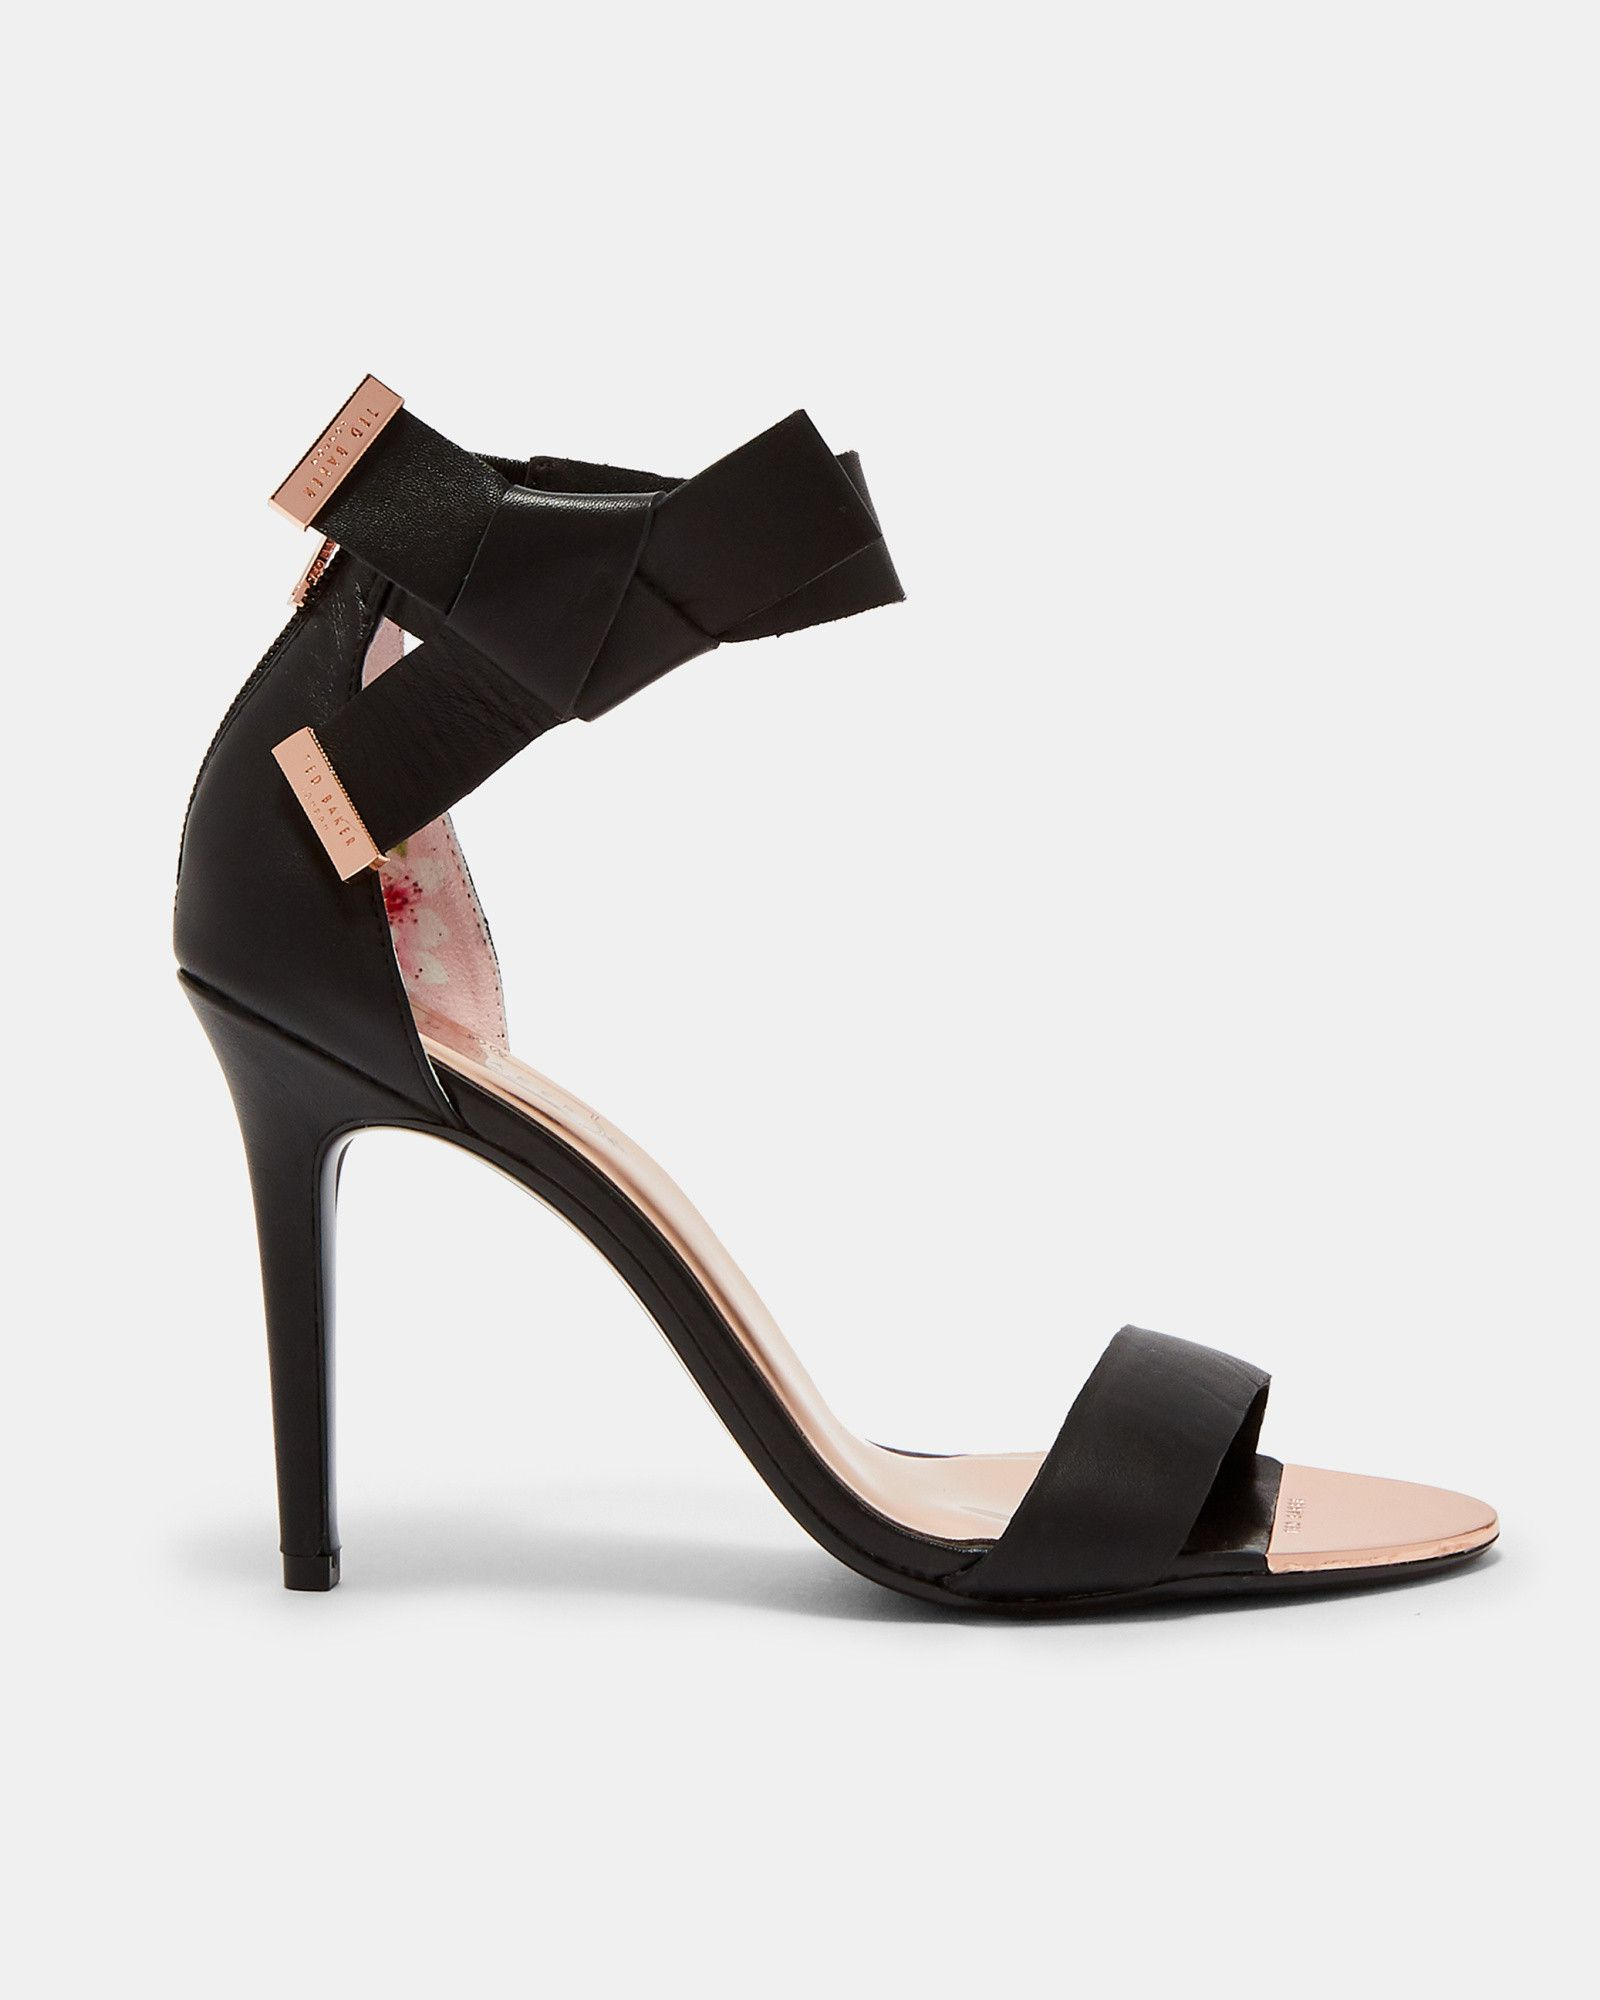 86d82a1103a Ted Baker Knotted bow leather sandals Black   Products   Shoes ...